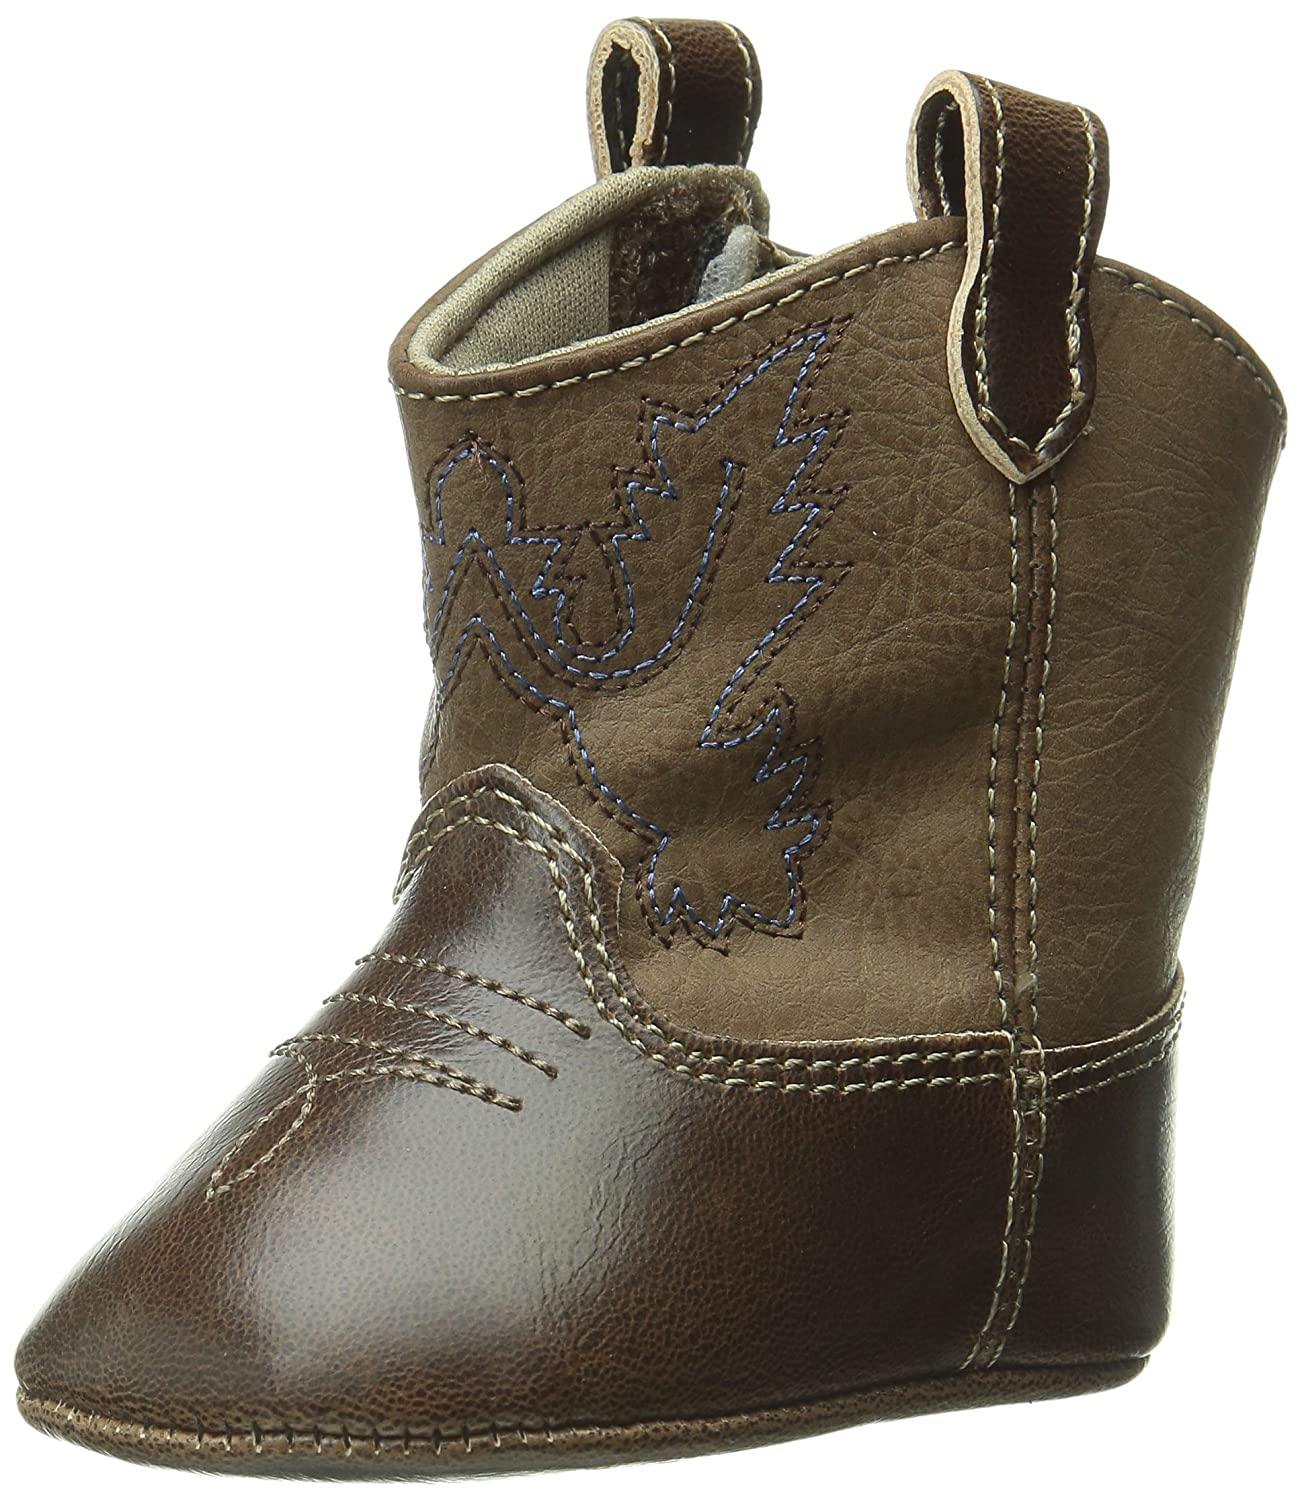 5fc16810ab485 Amazon.com: Baby Deer WS Western Boot (Infant): Shoes